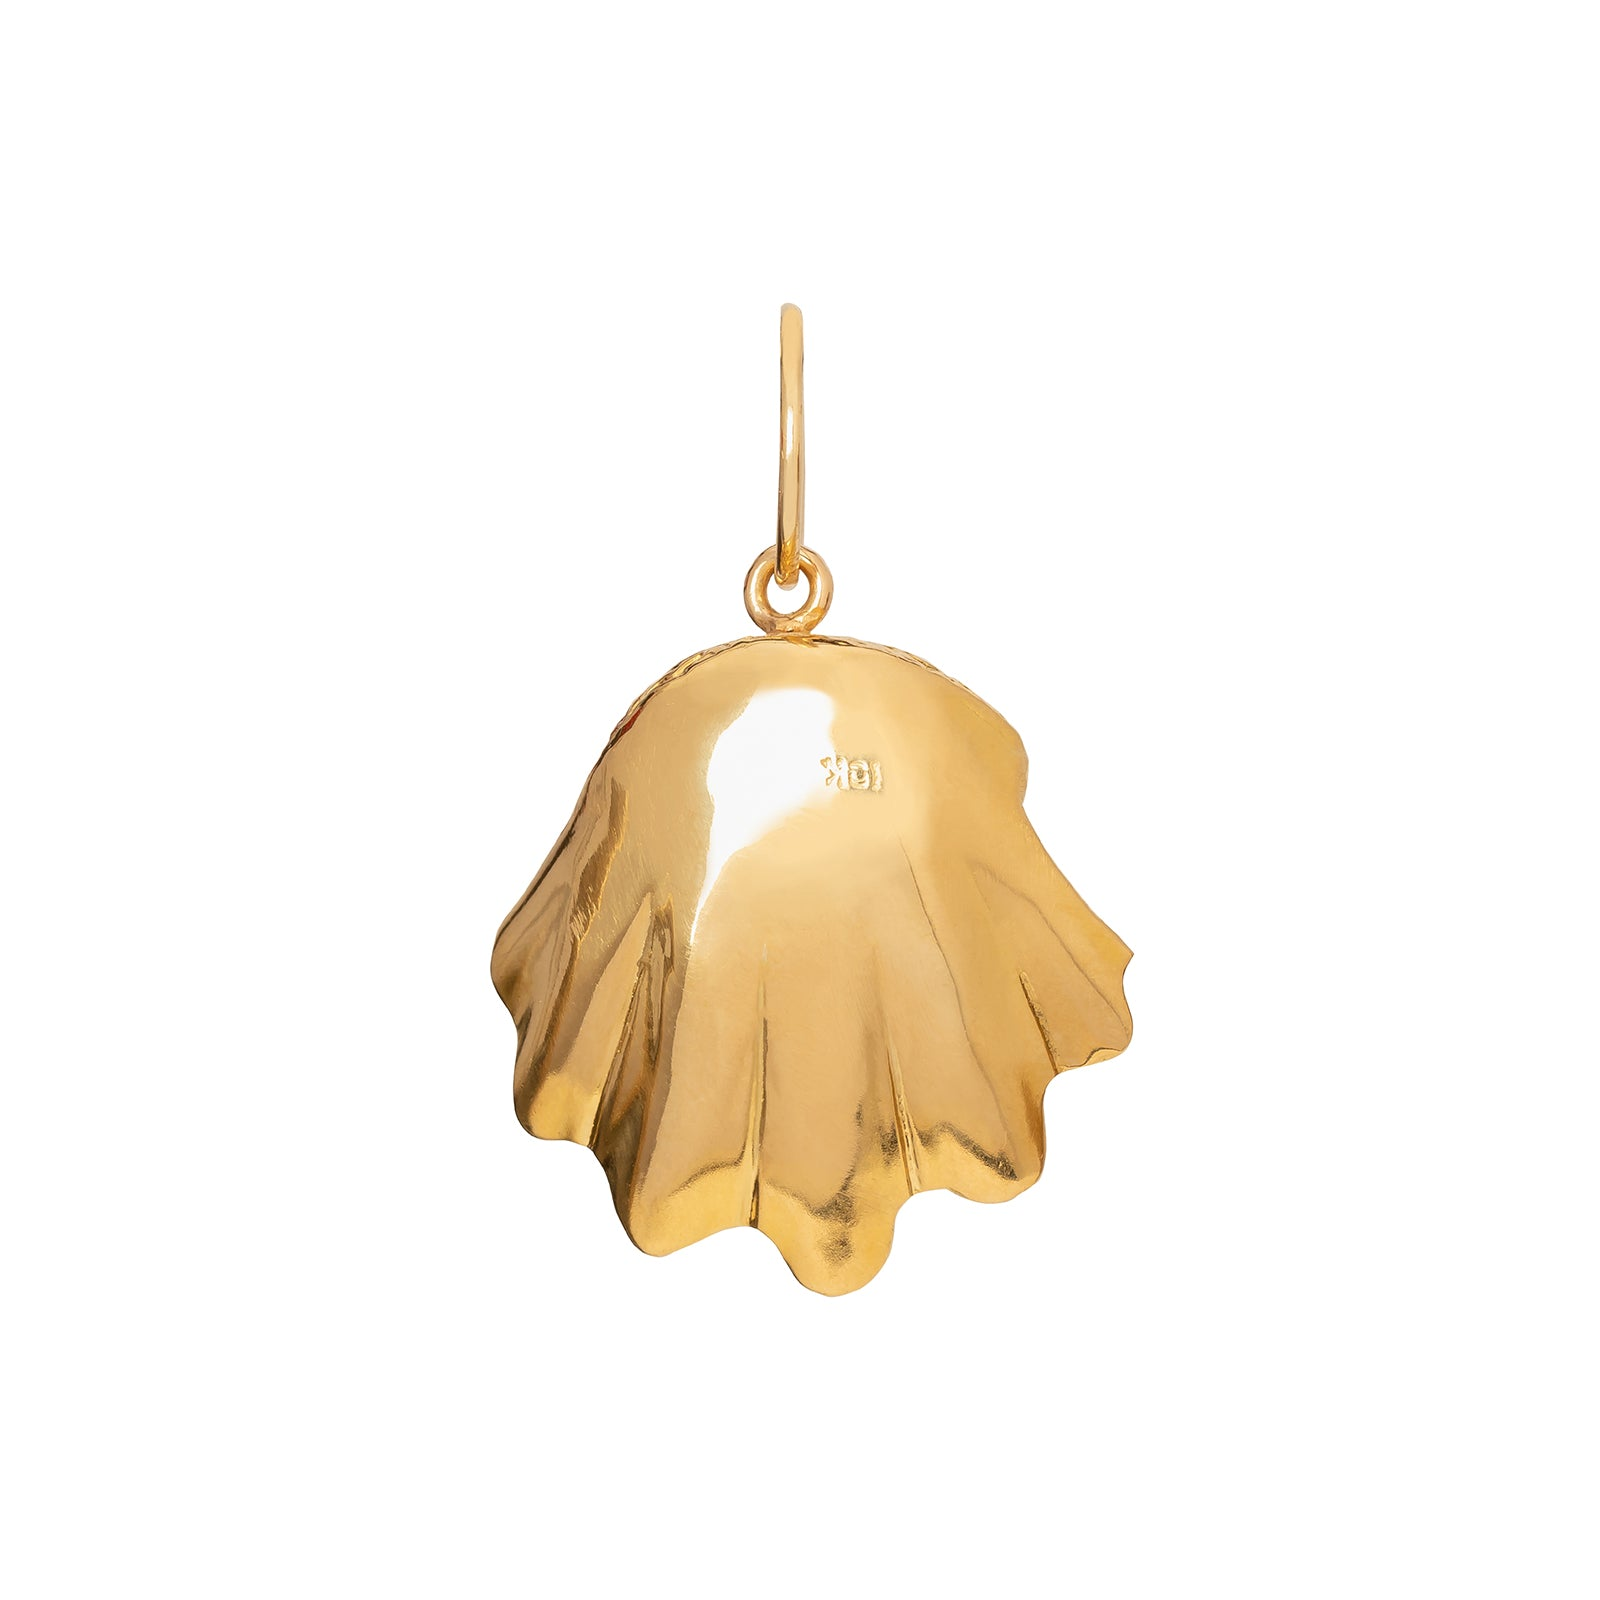 Jenna Blake Gold Clam Shell Pendant - Charms & Pendants - Broken English Jewelry